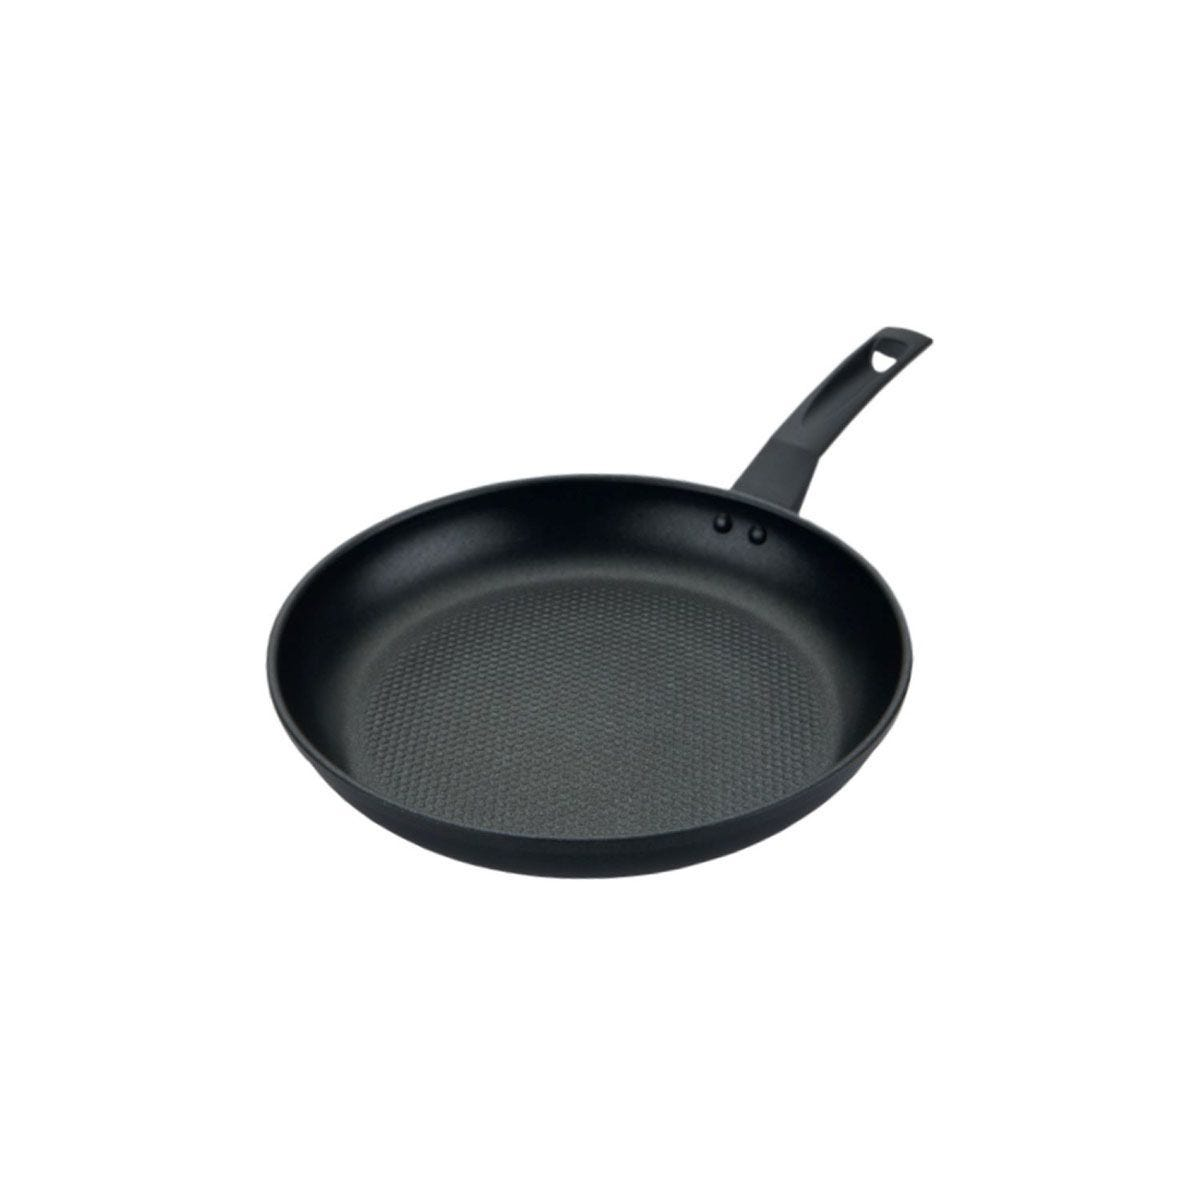 Prestige 9x Tougher Non-stick Frying Pan - 21cm